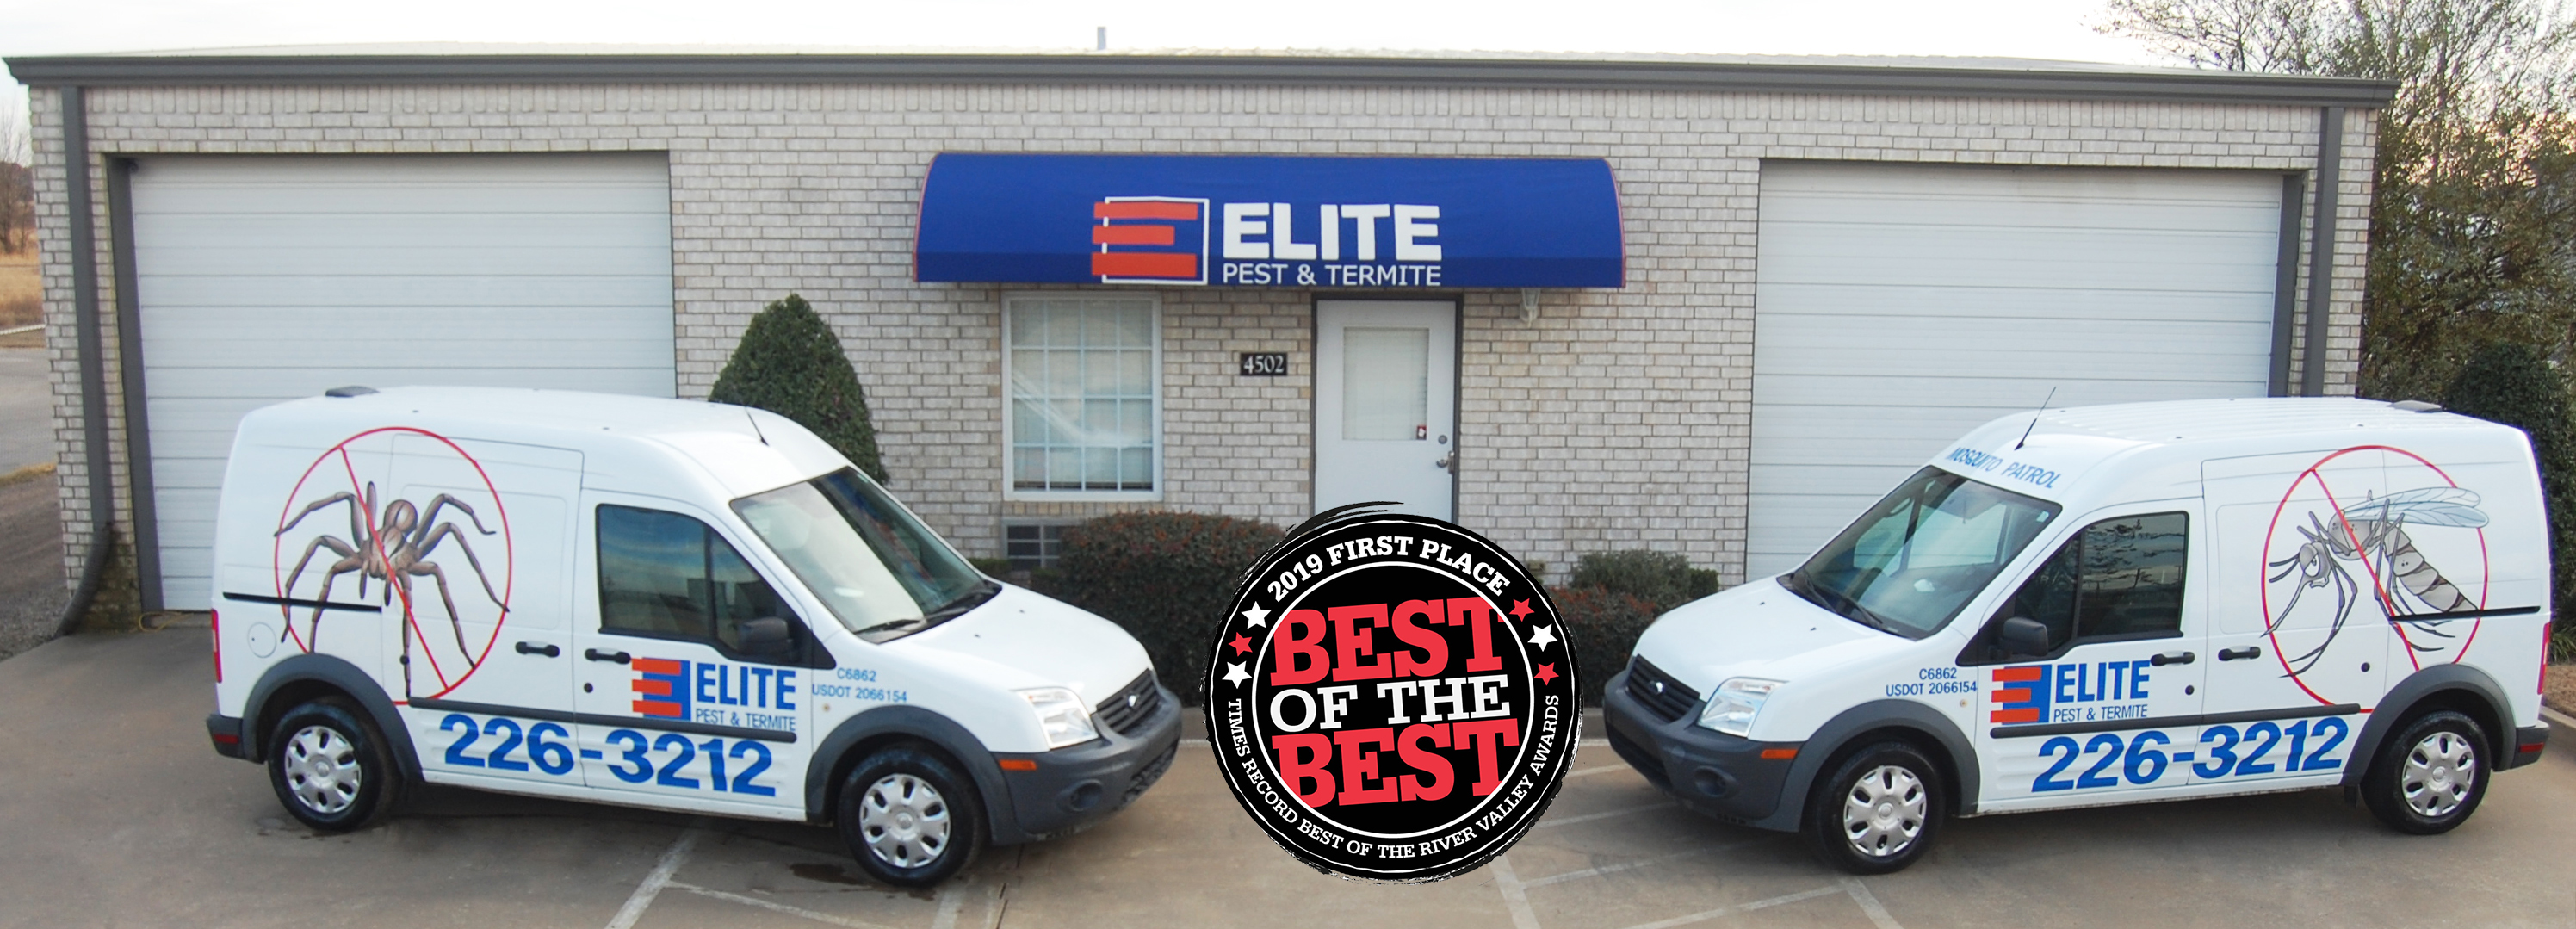 Elite Pest and Termite Fort Smith Arkansas River Valley Best of the Best 2019 Southwest Times Record